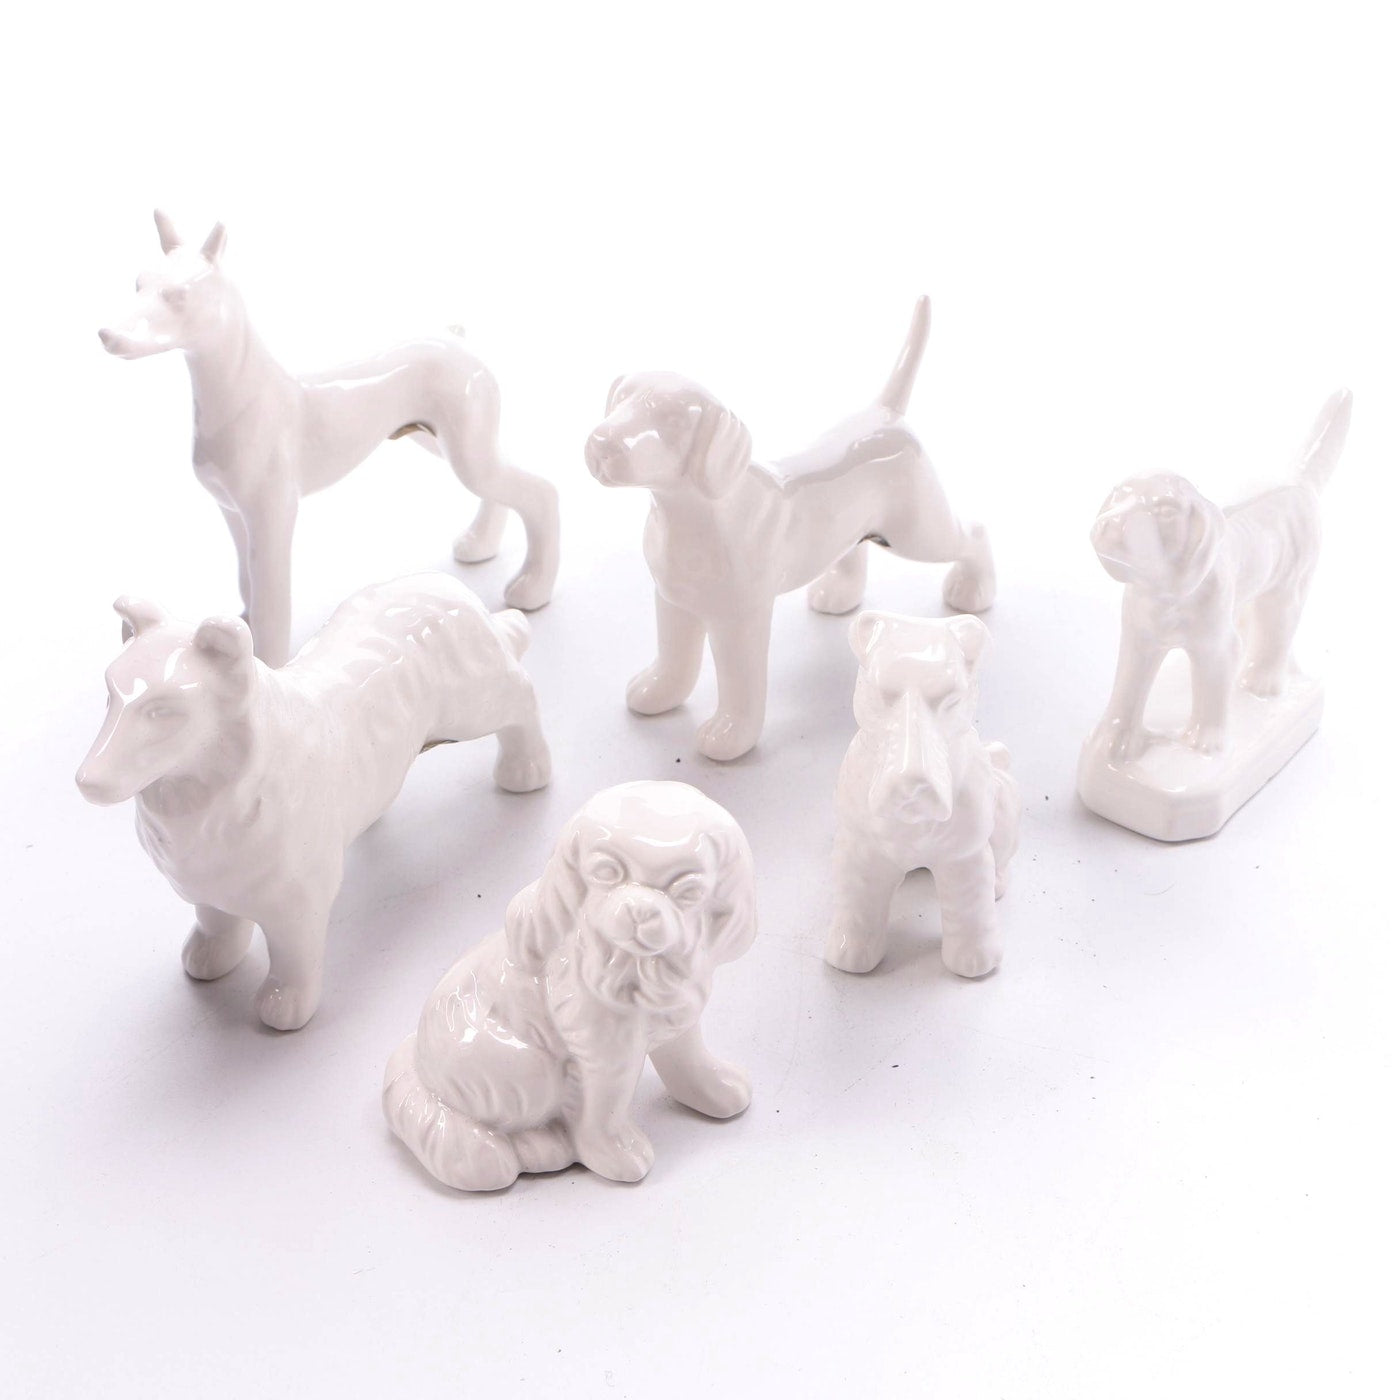 "Tozai ""Best in Show"" White Porcelain Dogs, TH-Tozai Home, Putti Fine Furnishings"